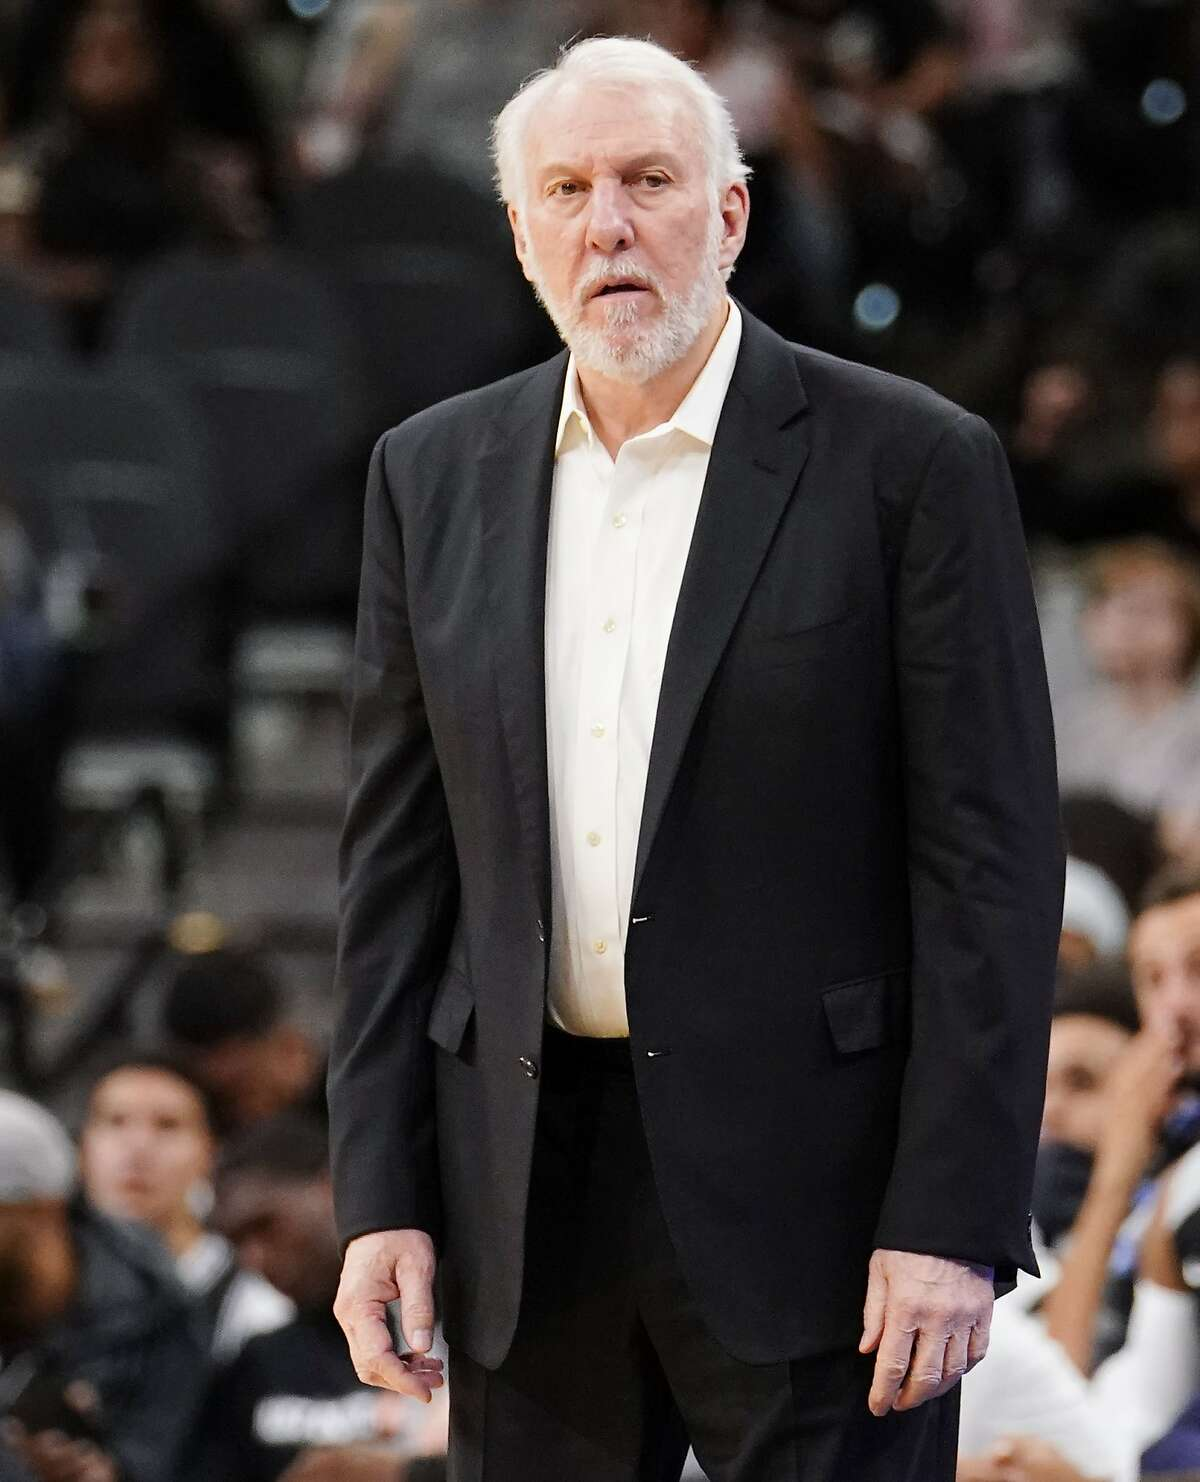 San Antonio Spurs head coach Gregg Popovich watches the second half of an NBA preseason basketball game against the Houston Rockets, Sunday, Oct. 7, 2018, in San Antonio. (AP Photo/Darren Abate)